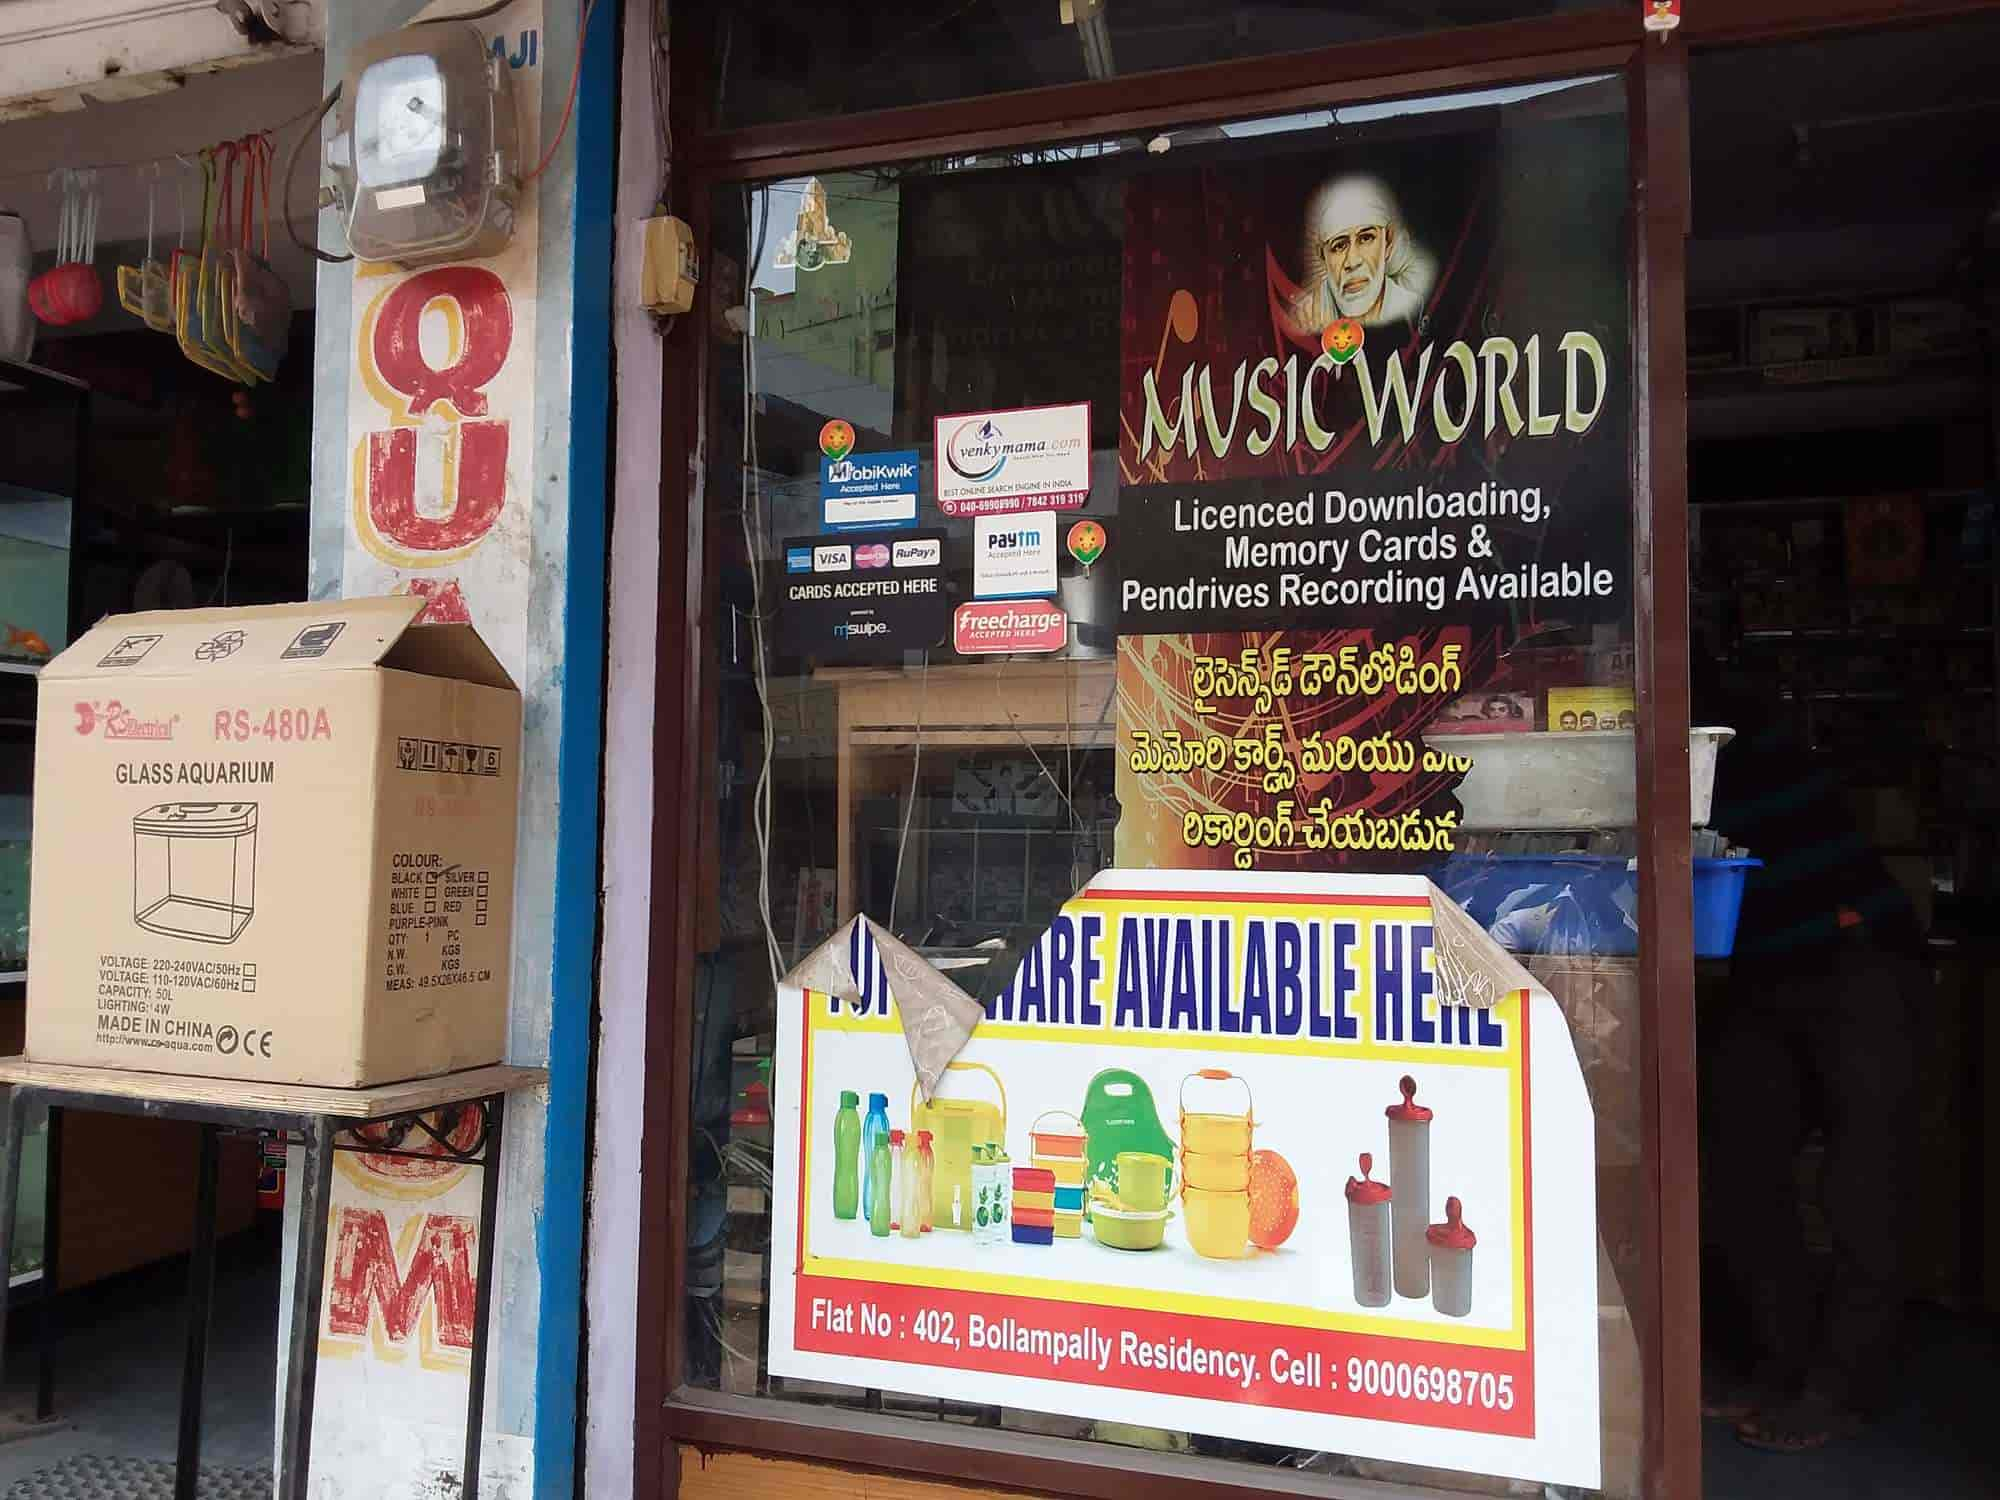 Music World Photos, Malkajgiri, Hyderabad- Pictures & Images